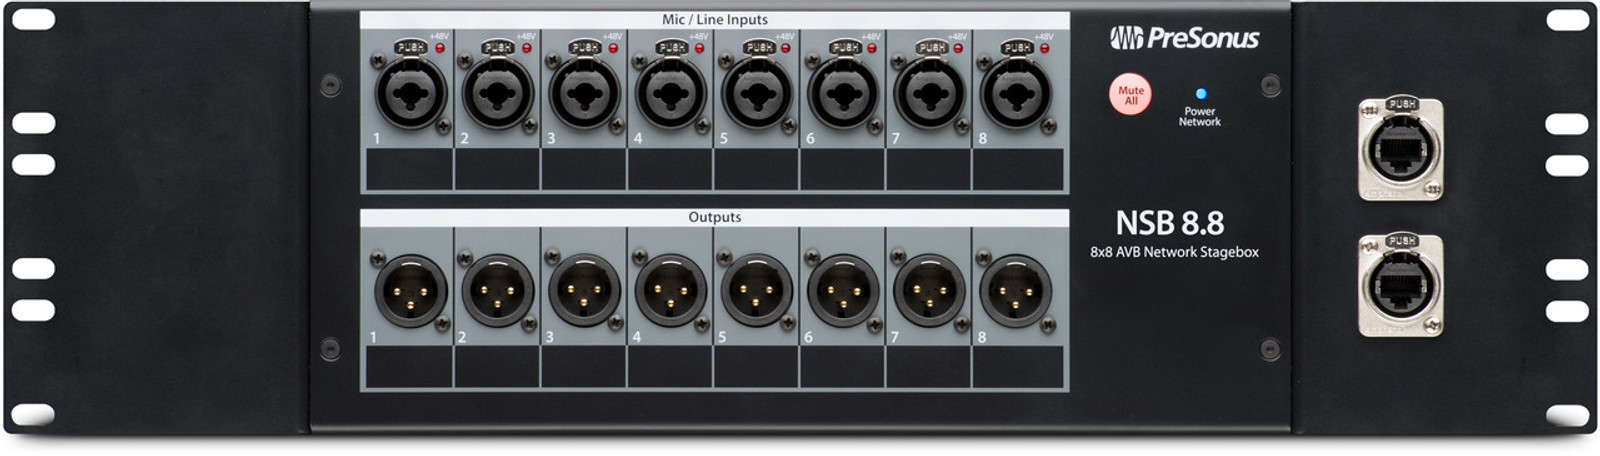 Optional rack ear kit